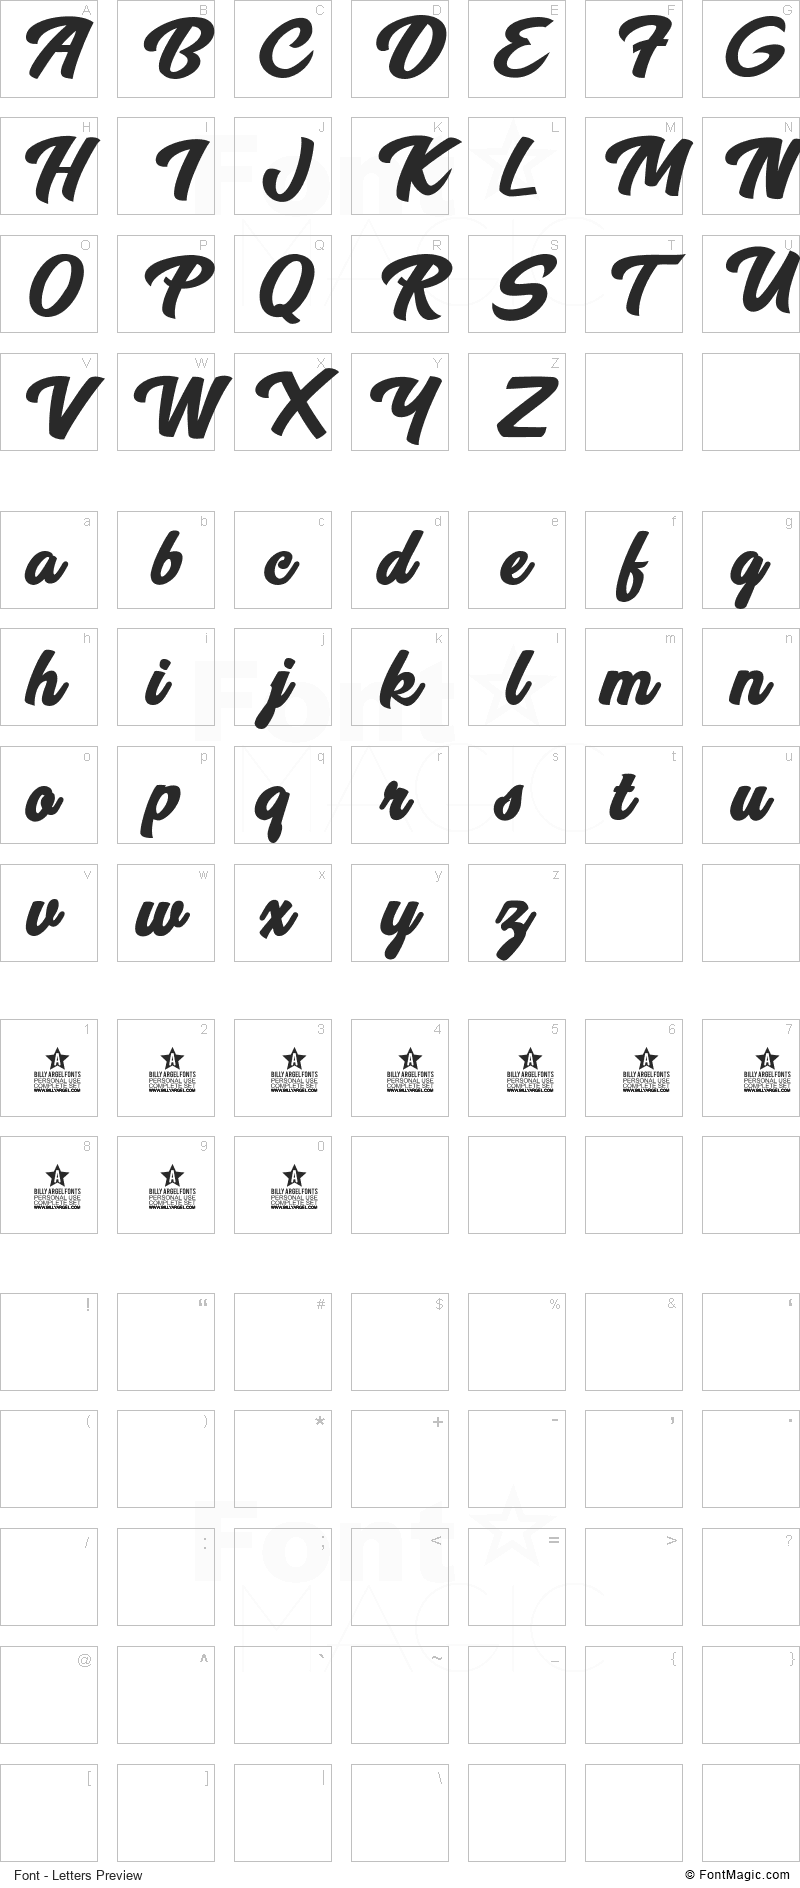 Breeze Font - All Latters Preview Chart